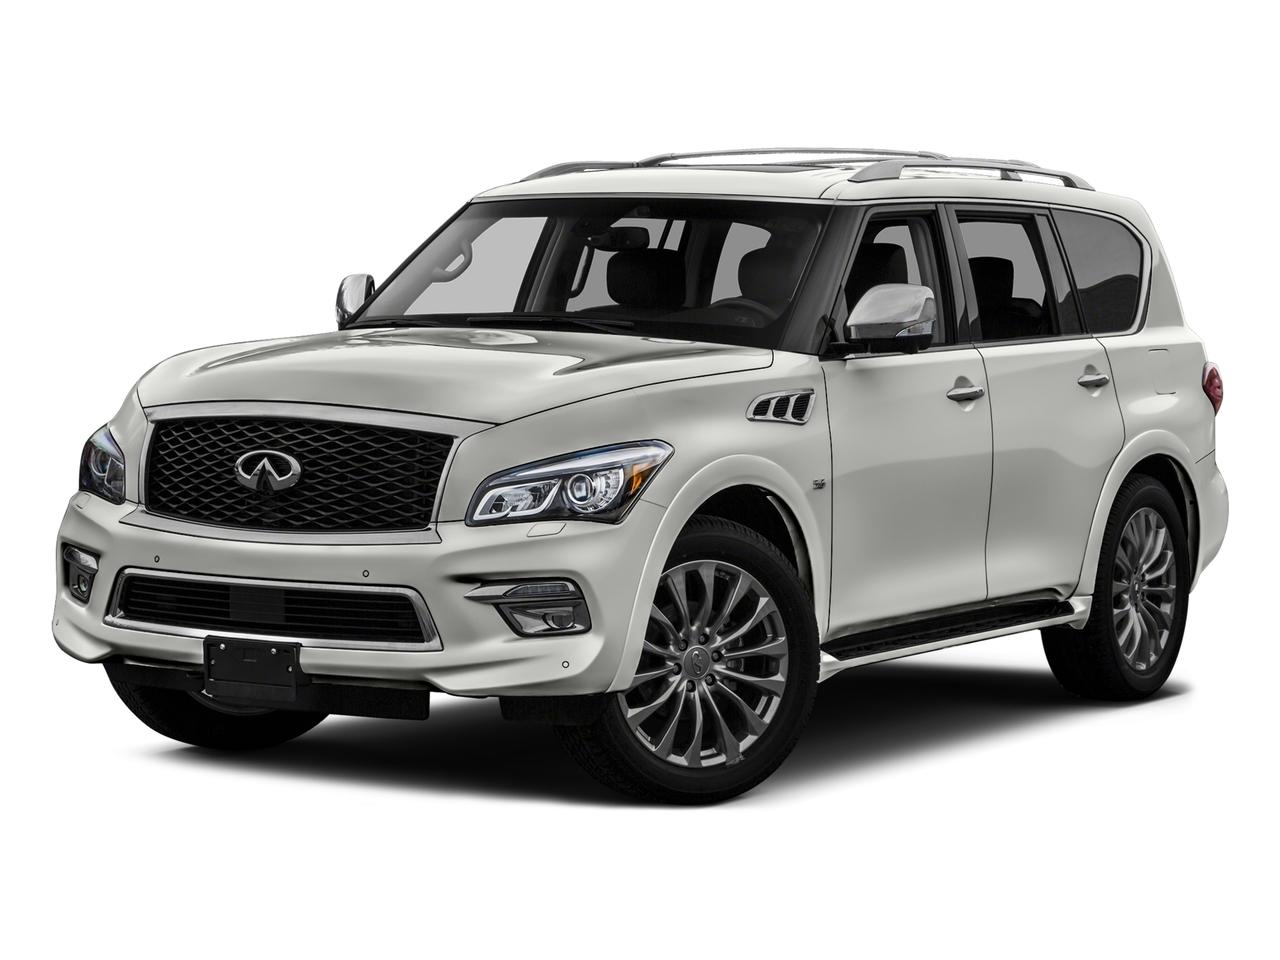 2016 INFINITI QX80 Vehicle Photo in Willow Grove, PA 19090